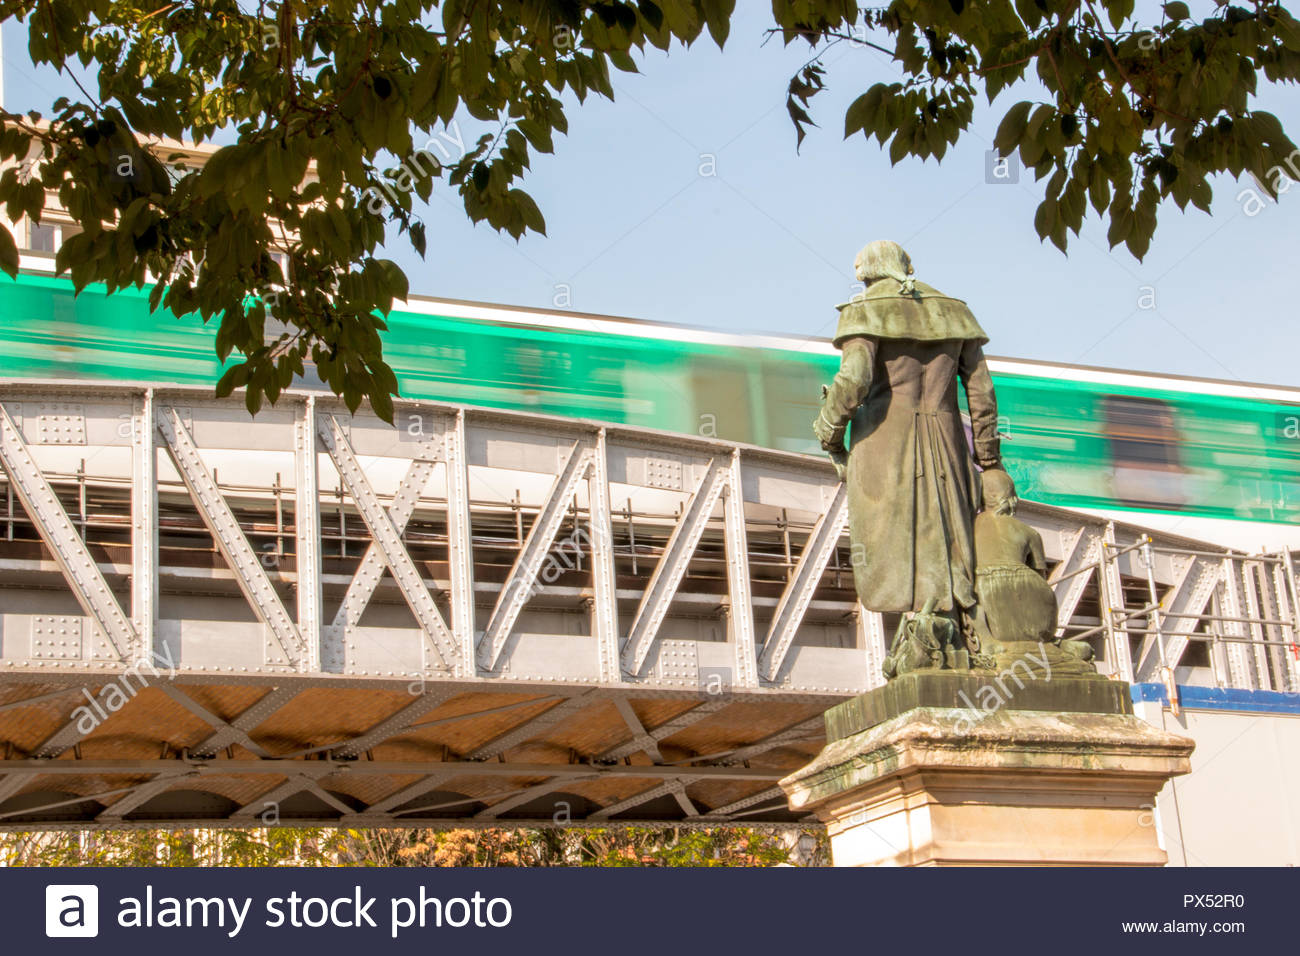 Paris (France), 18 October 2018. Metro line 5 flying over a Parisian square. - Stock Image